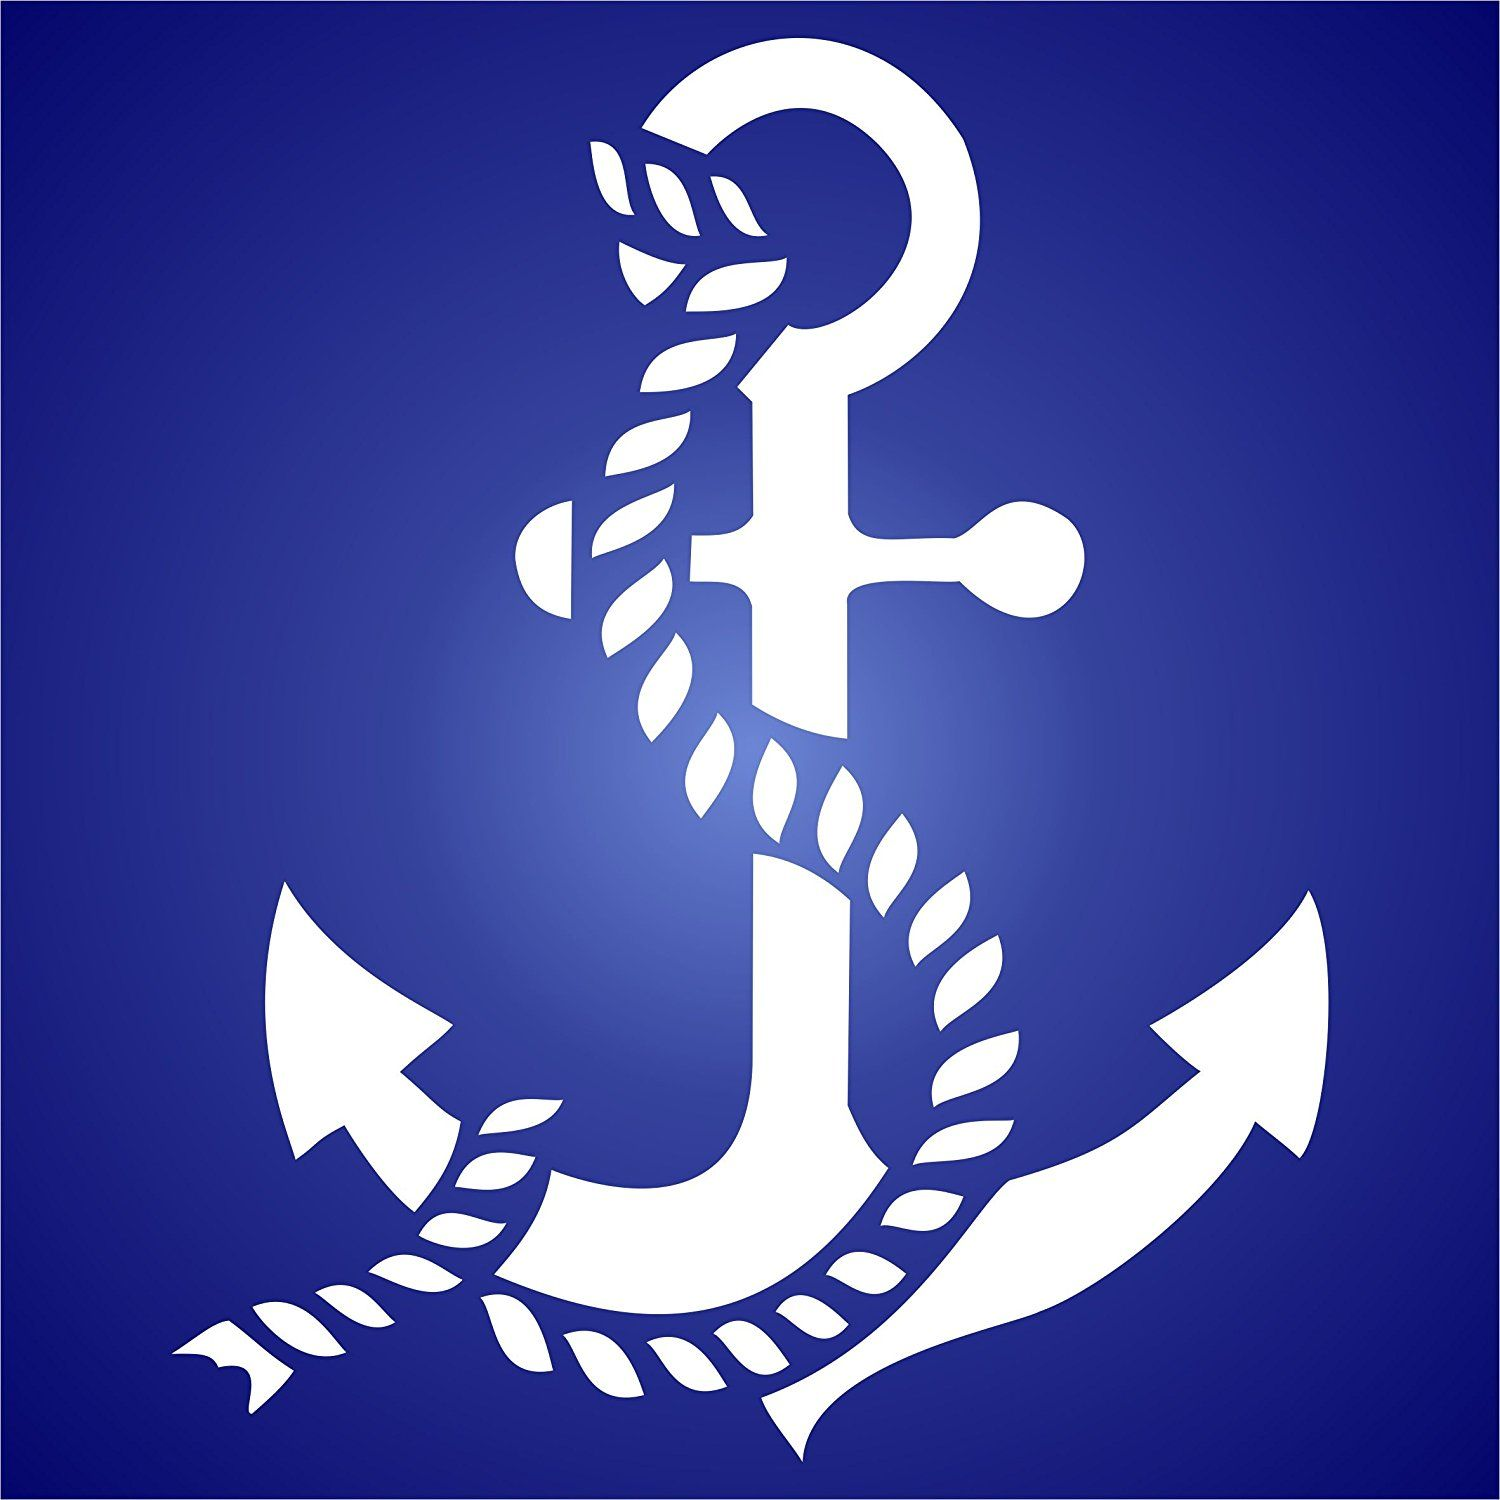 Stencils for Walls' new Anchor Stencil is any beach and ...